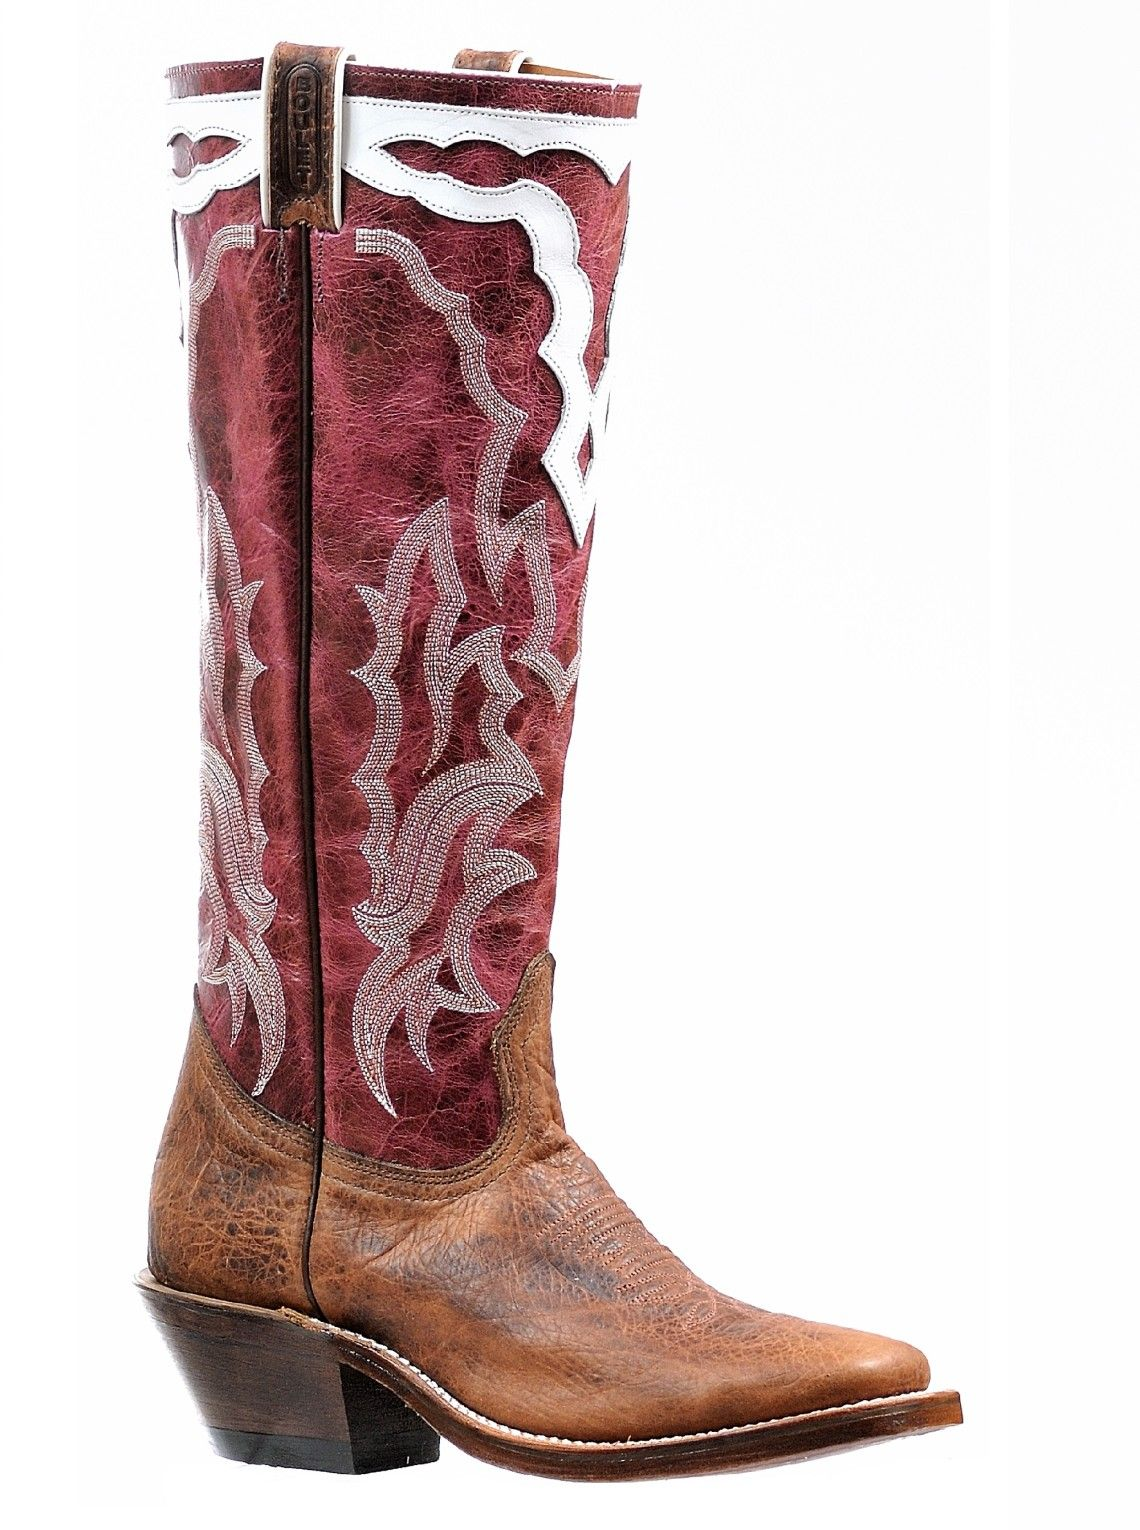 c64acc3f3 6337 in 2019   My style   Tall cowgirl boots, Cowgirl boots, Boots